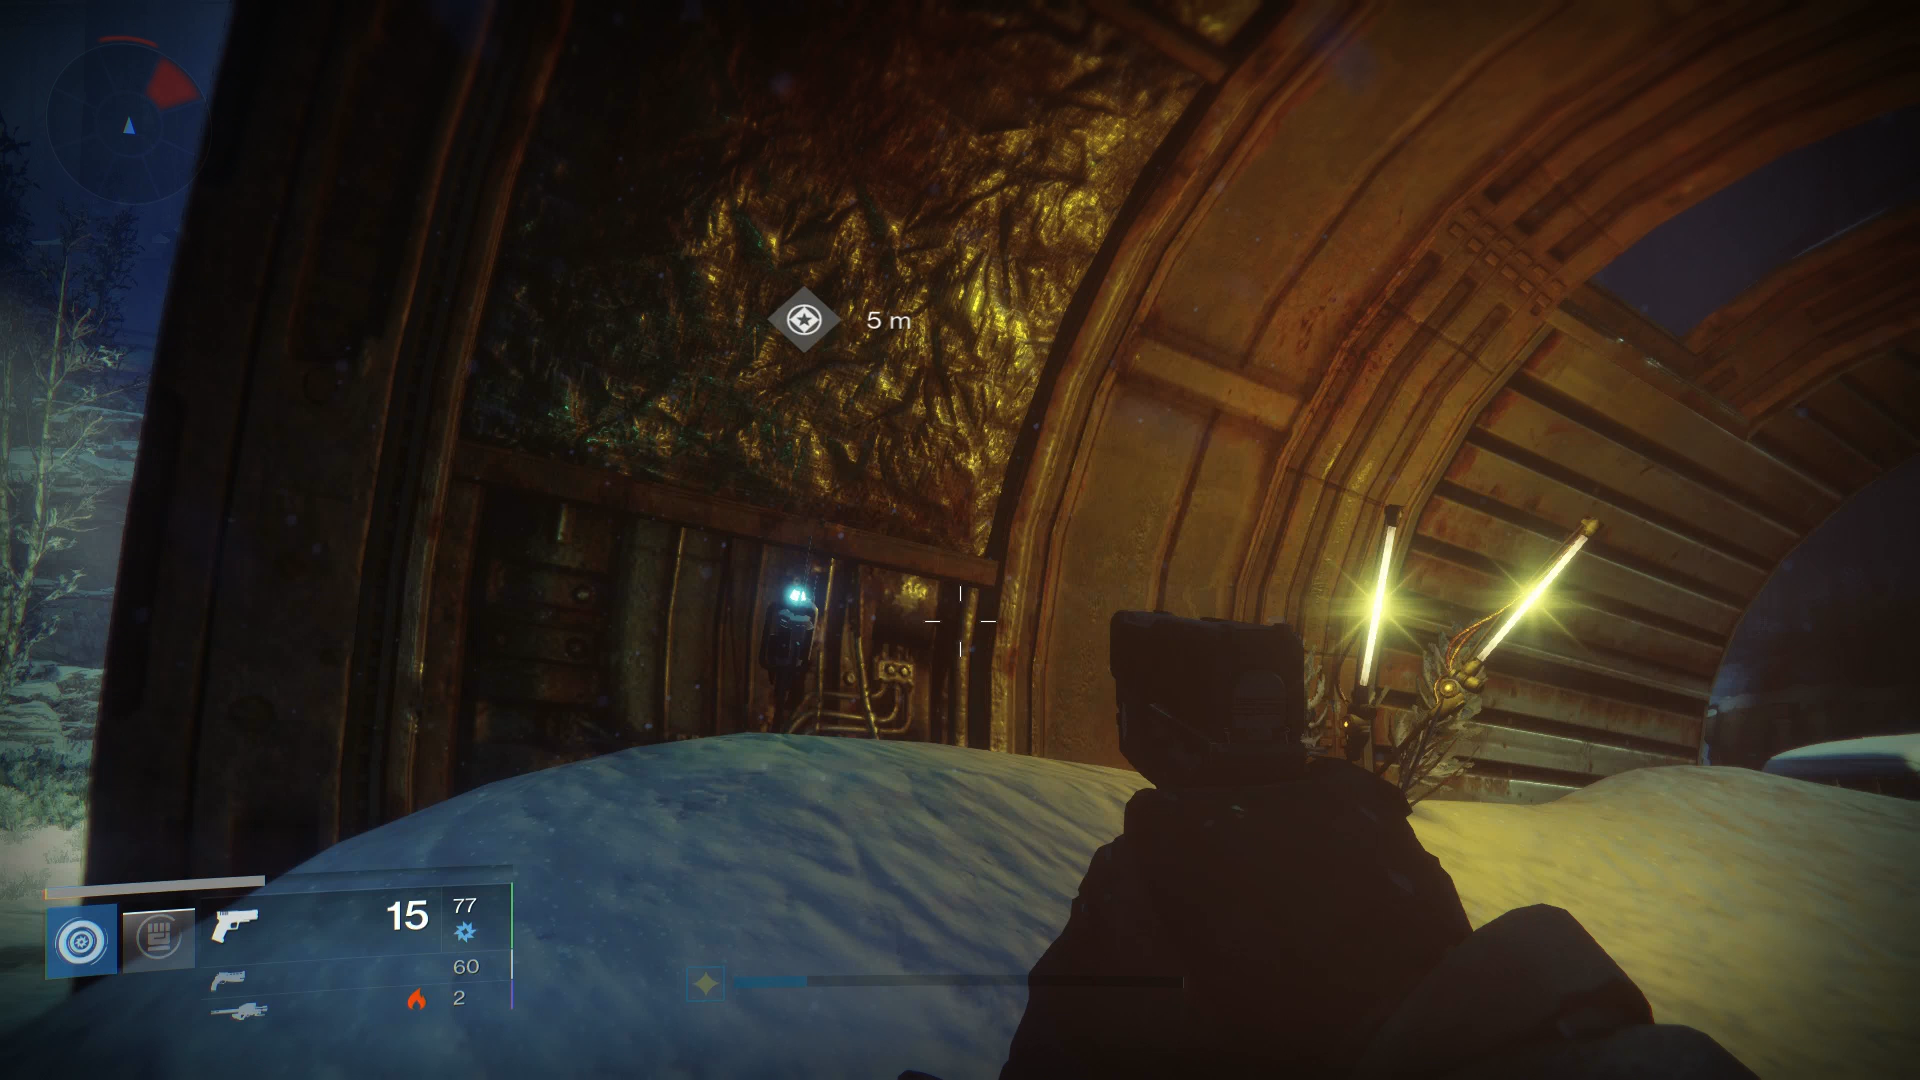 Destiny rise of iron plaguelands and quarantine patrol hints assassination patrols assassination patrols task you with killing a specific target in a specific location often taking you to the other side of the buycottarizona Image collections